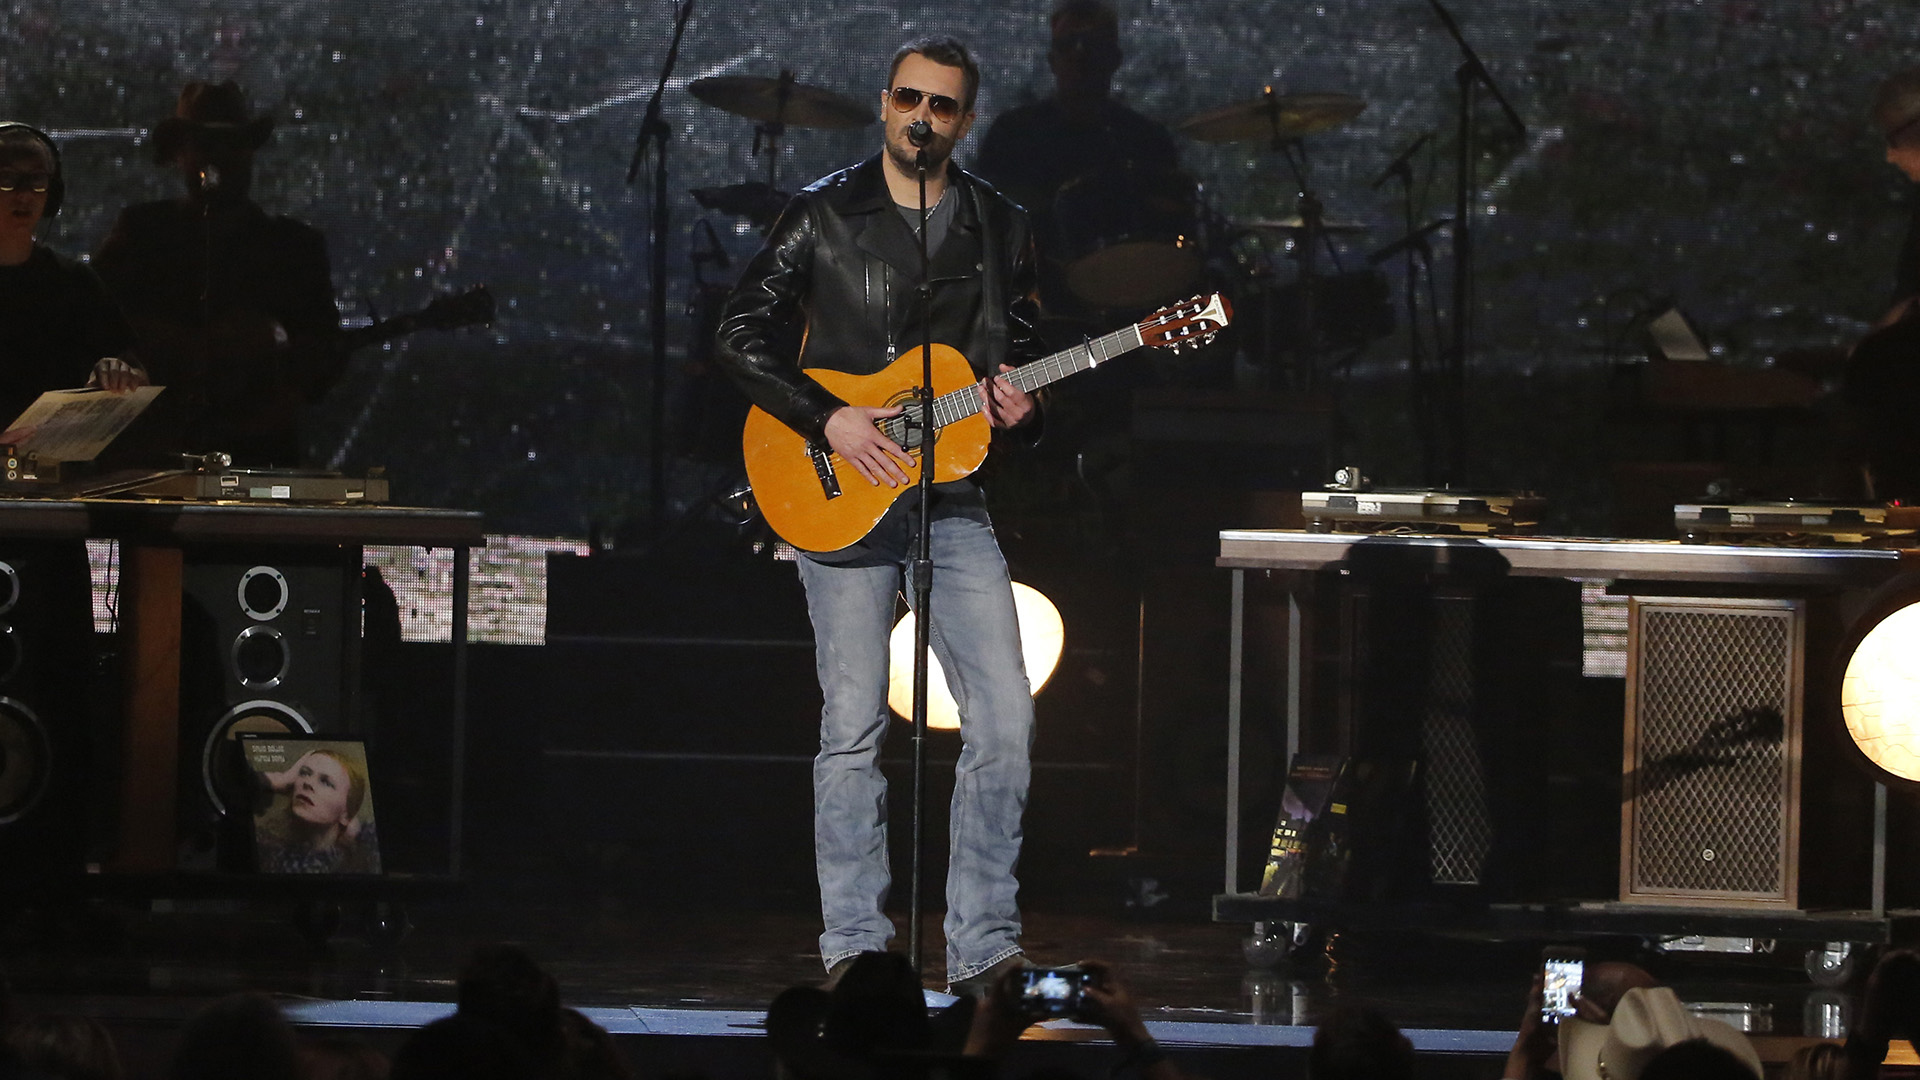 15. Eric Church performs